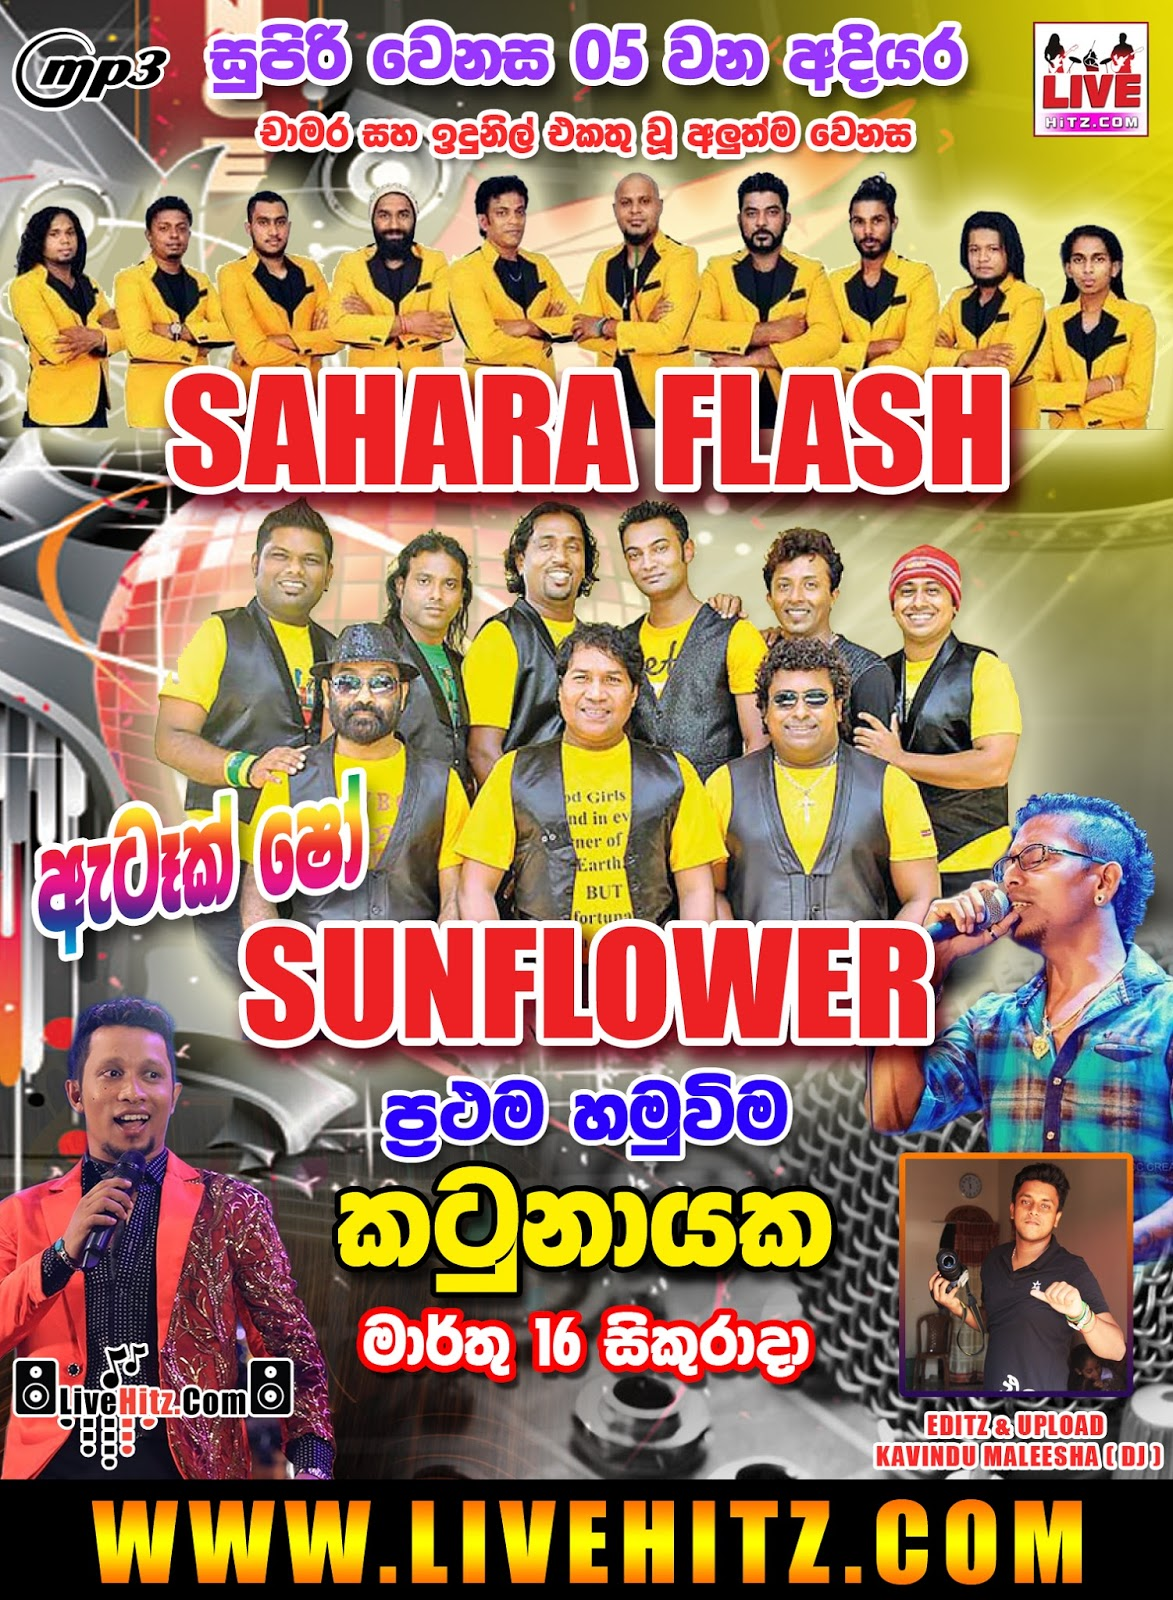 sahara flash dj nonstop